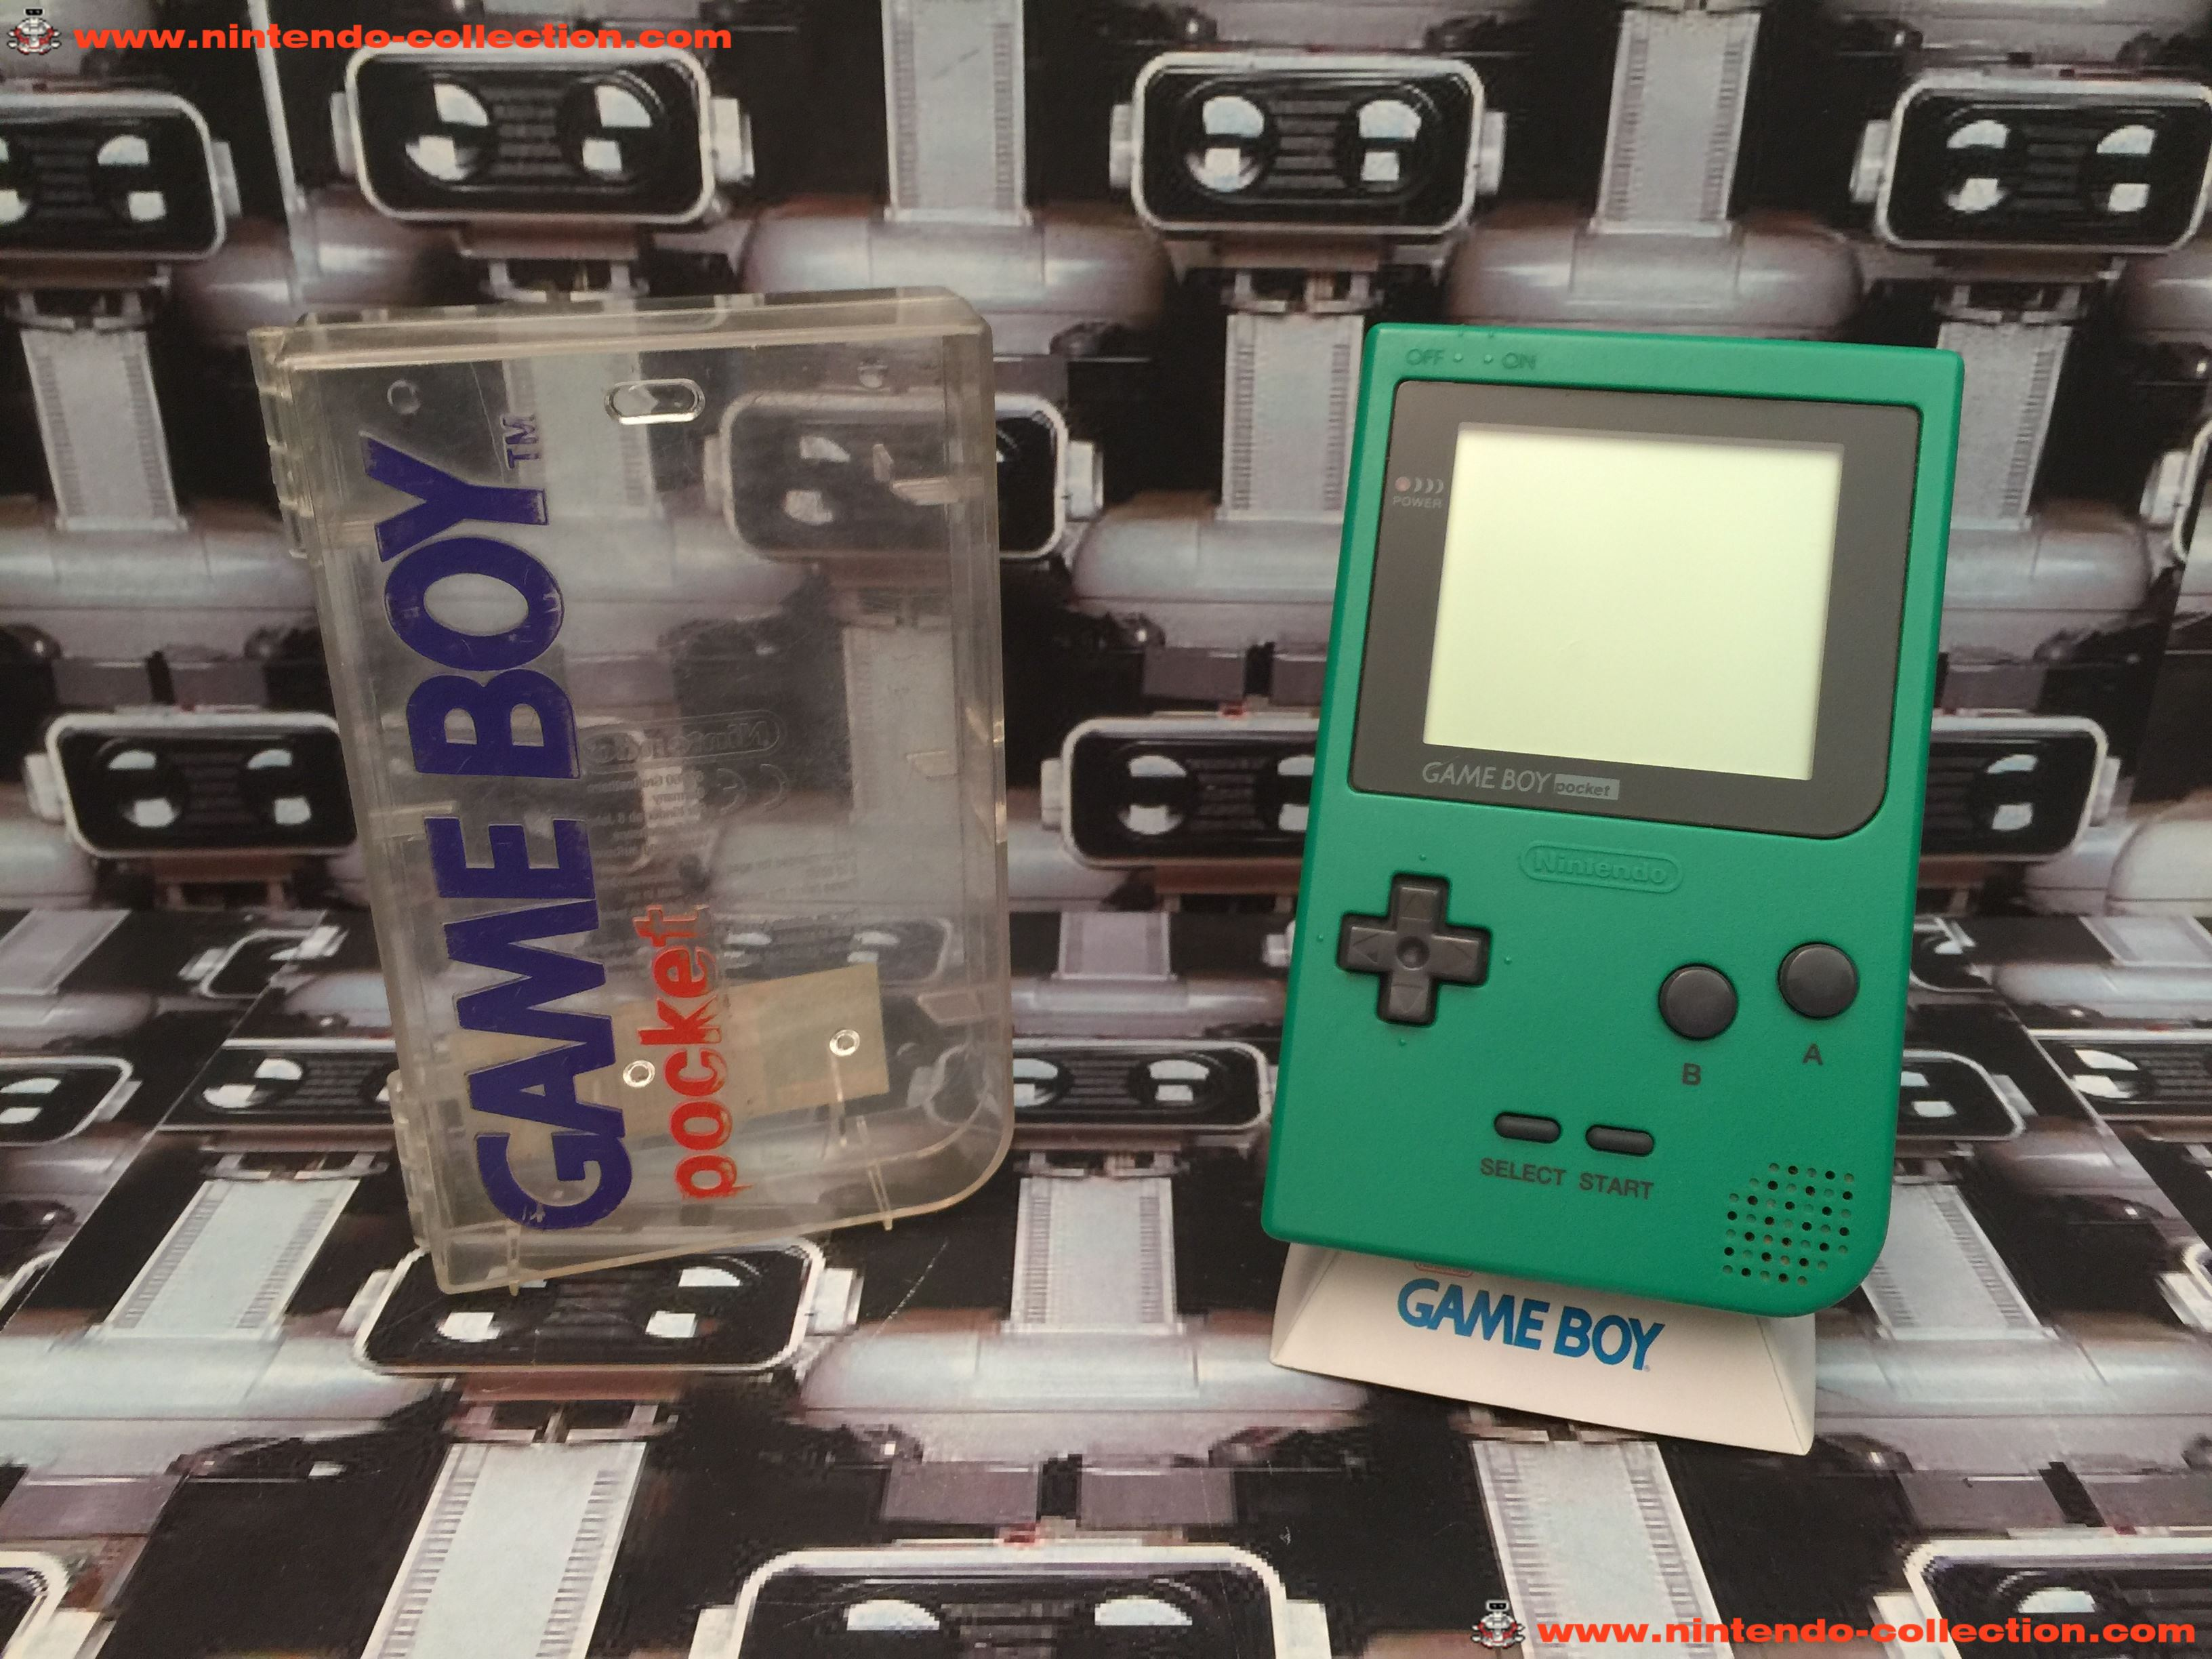 www.nintendo-collection.com - Gameboy Pocket GB Green Vert Crystal Box - 01